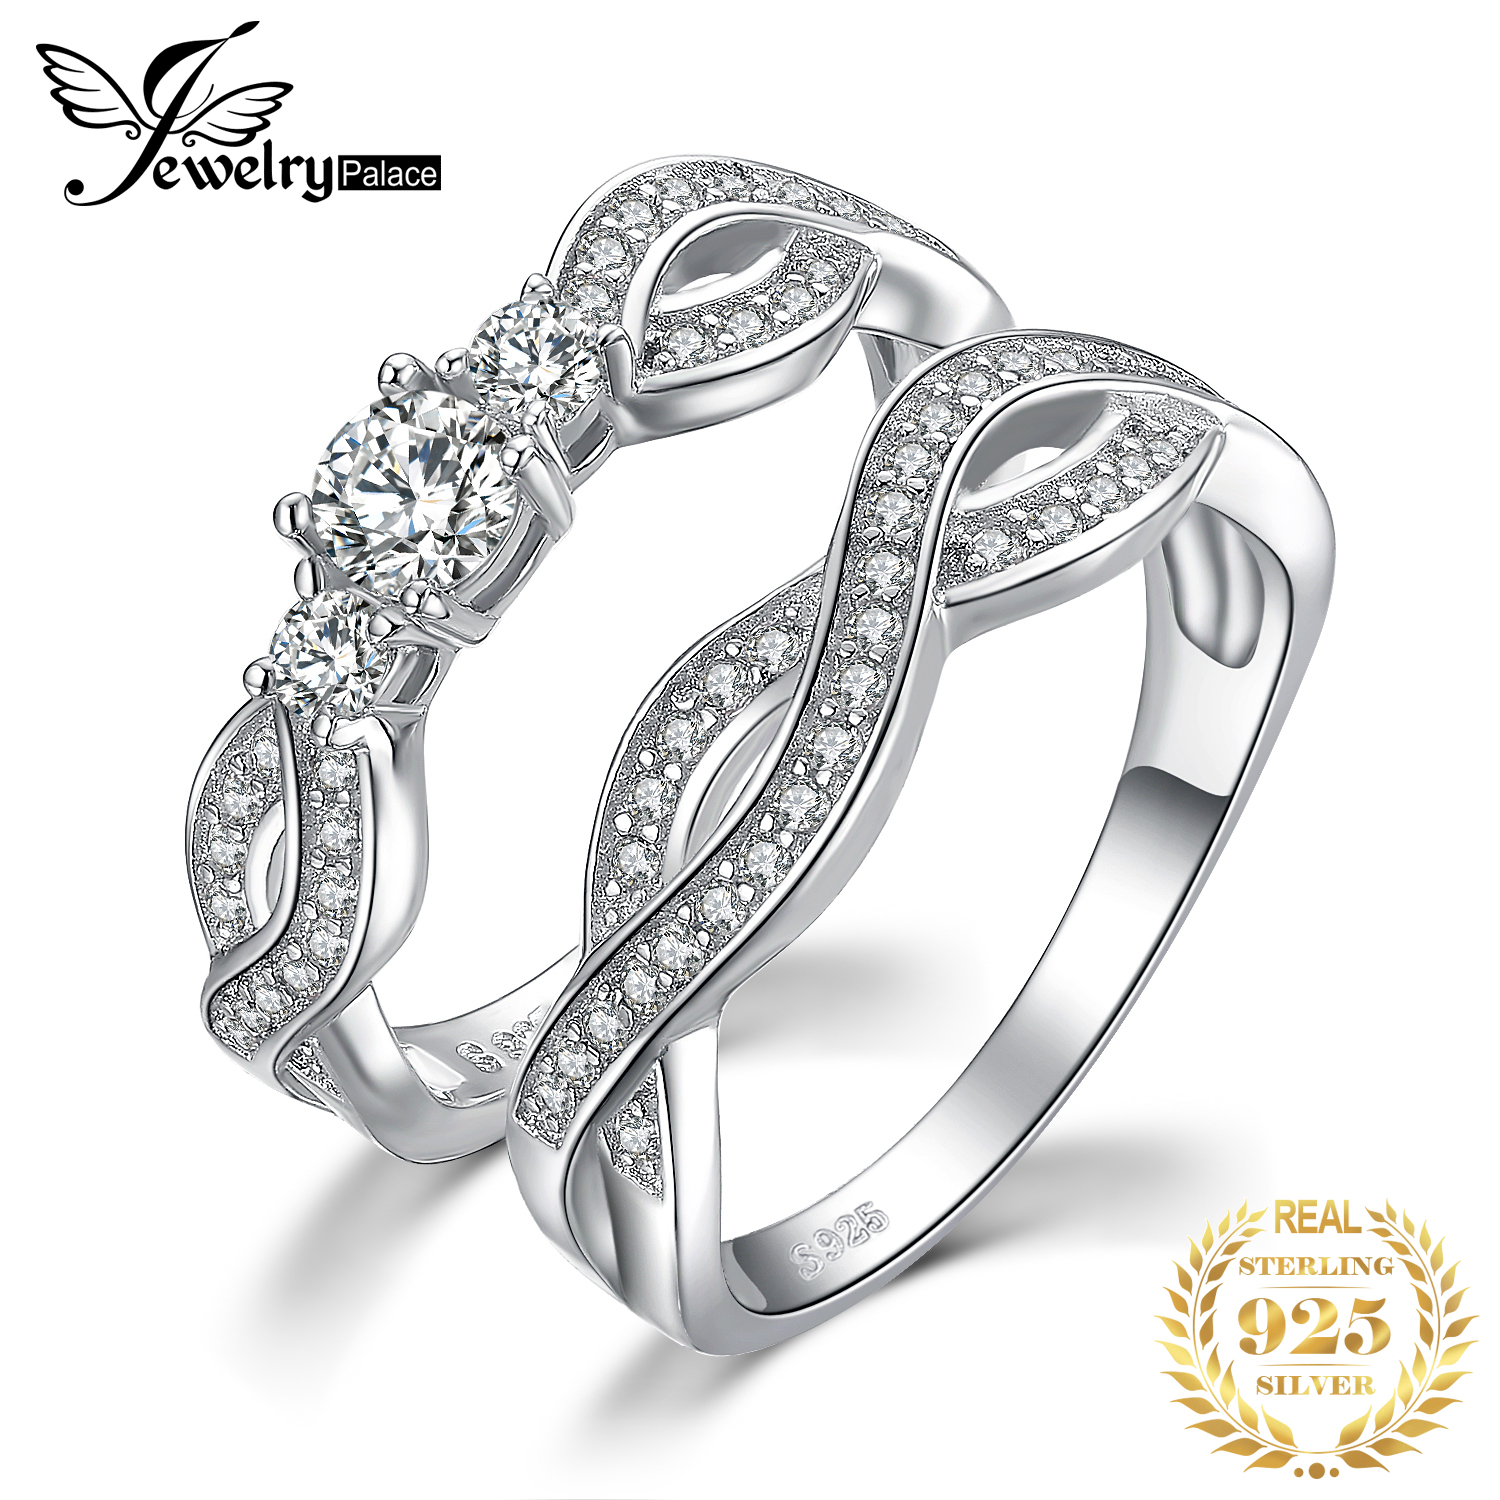 JPalace Infinity CZ Engagement Ring Set 925 Sterling Silver Rings For Women Wedding Rings Bands Bridal Sets Silver 925 Jewelry